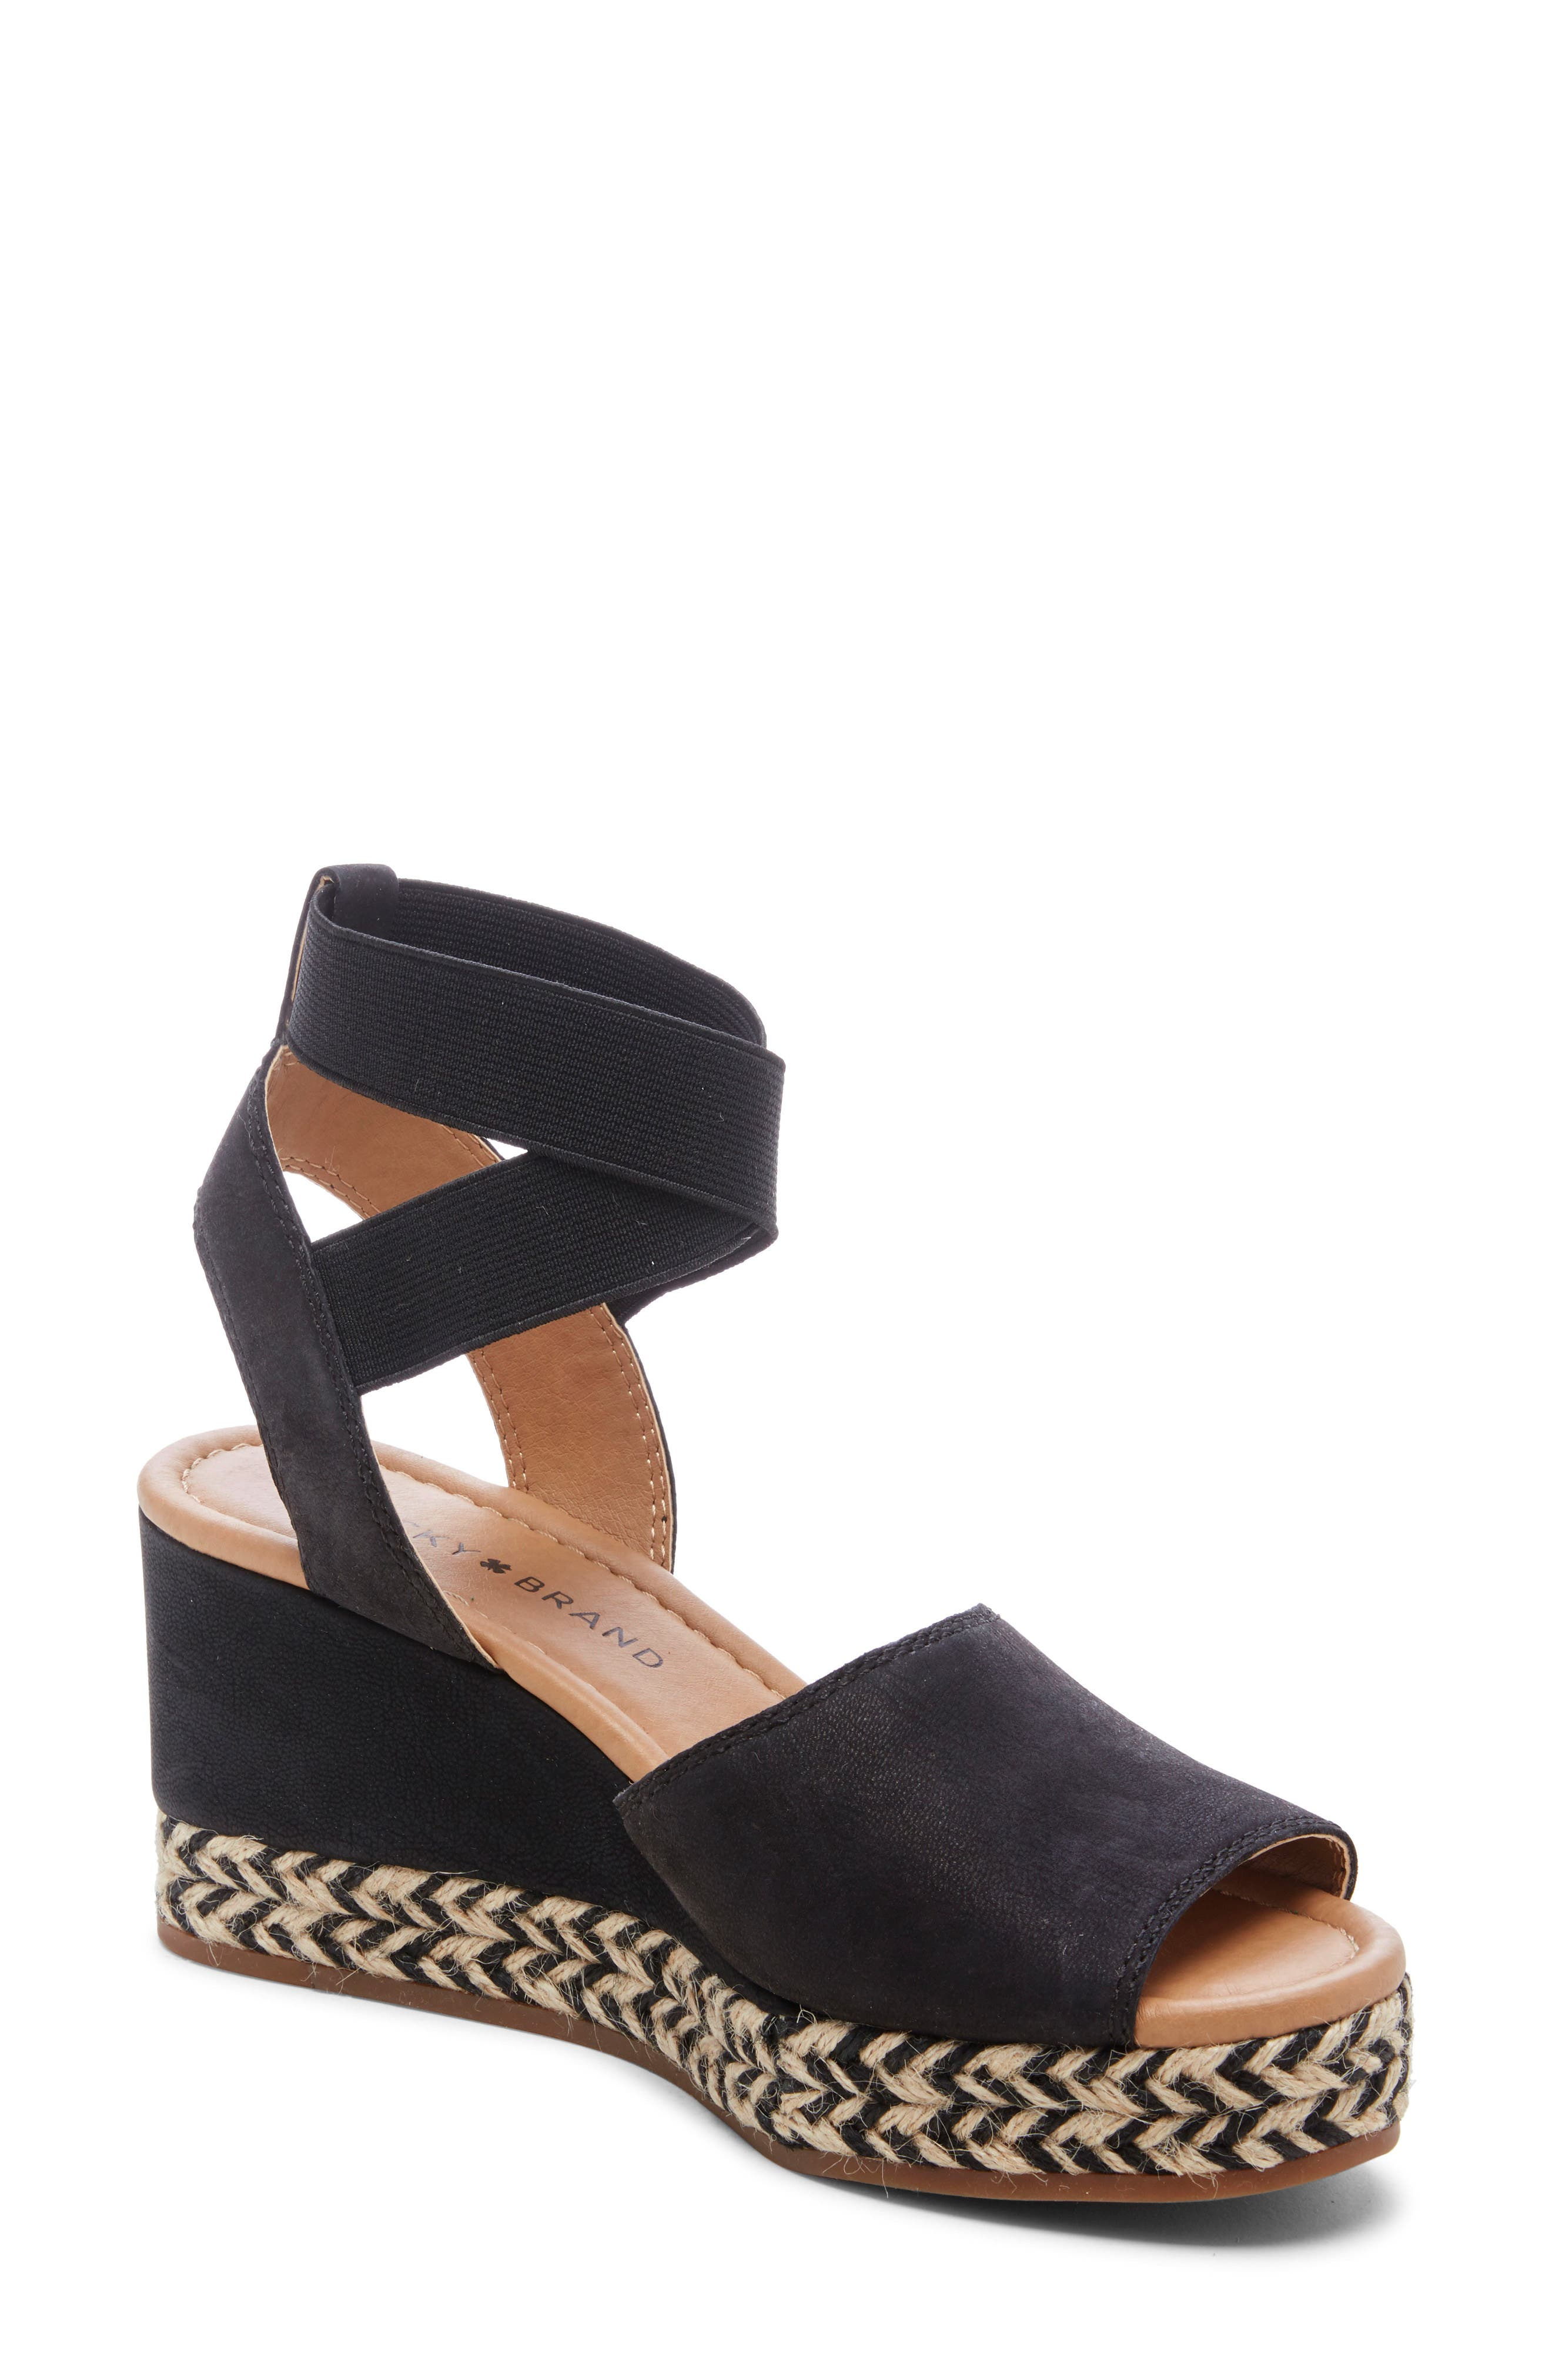 Bettanie Espadrille Wedge Sandal, Main, color, BLACK LEATHER